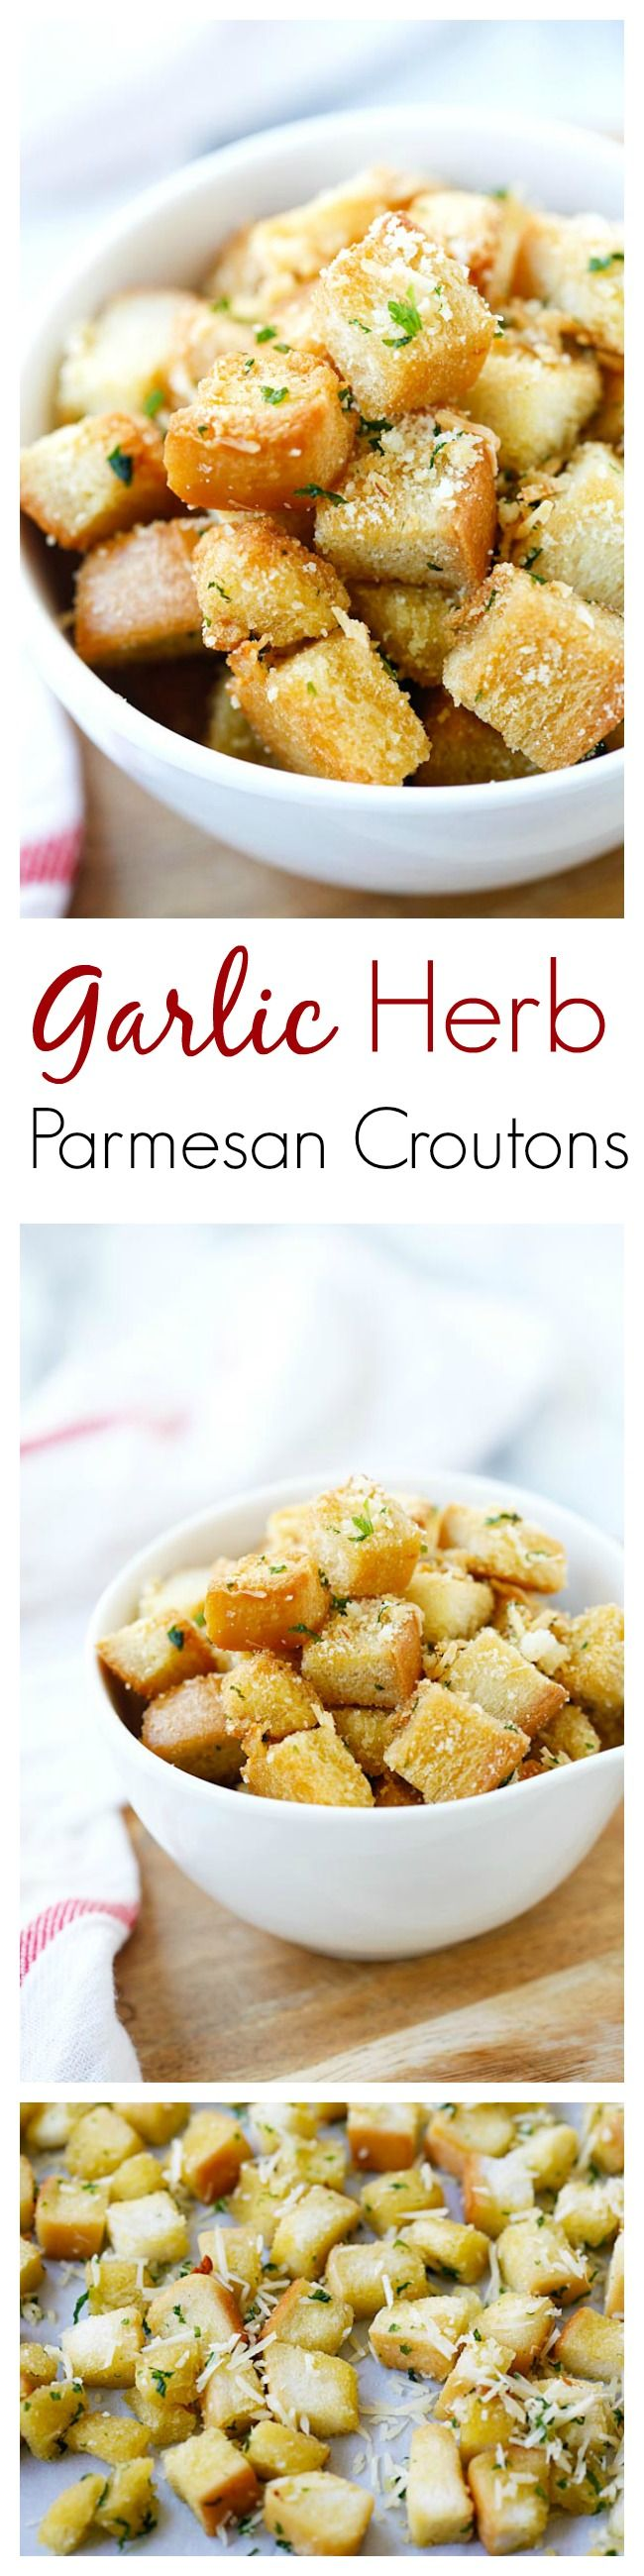 Garlic Herb Parmesan Croutons – amazing and super crispy croutons at home with this easy recipe that takes only 25 mins from prep to dinner table ✿⊱╮